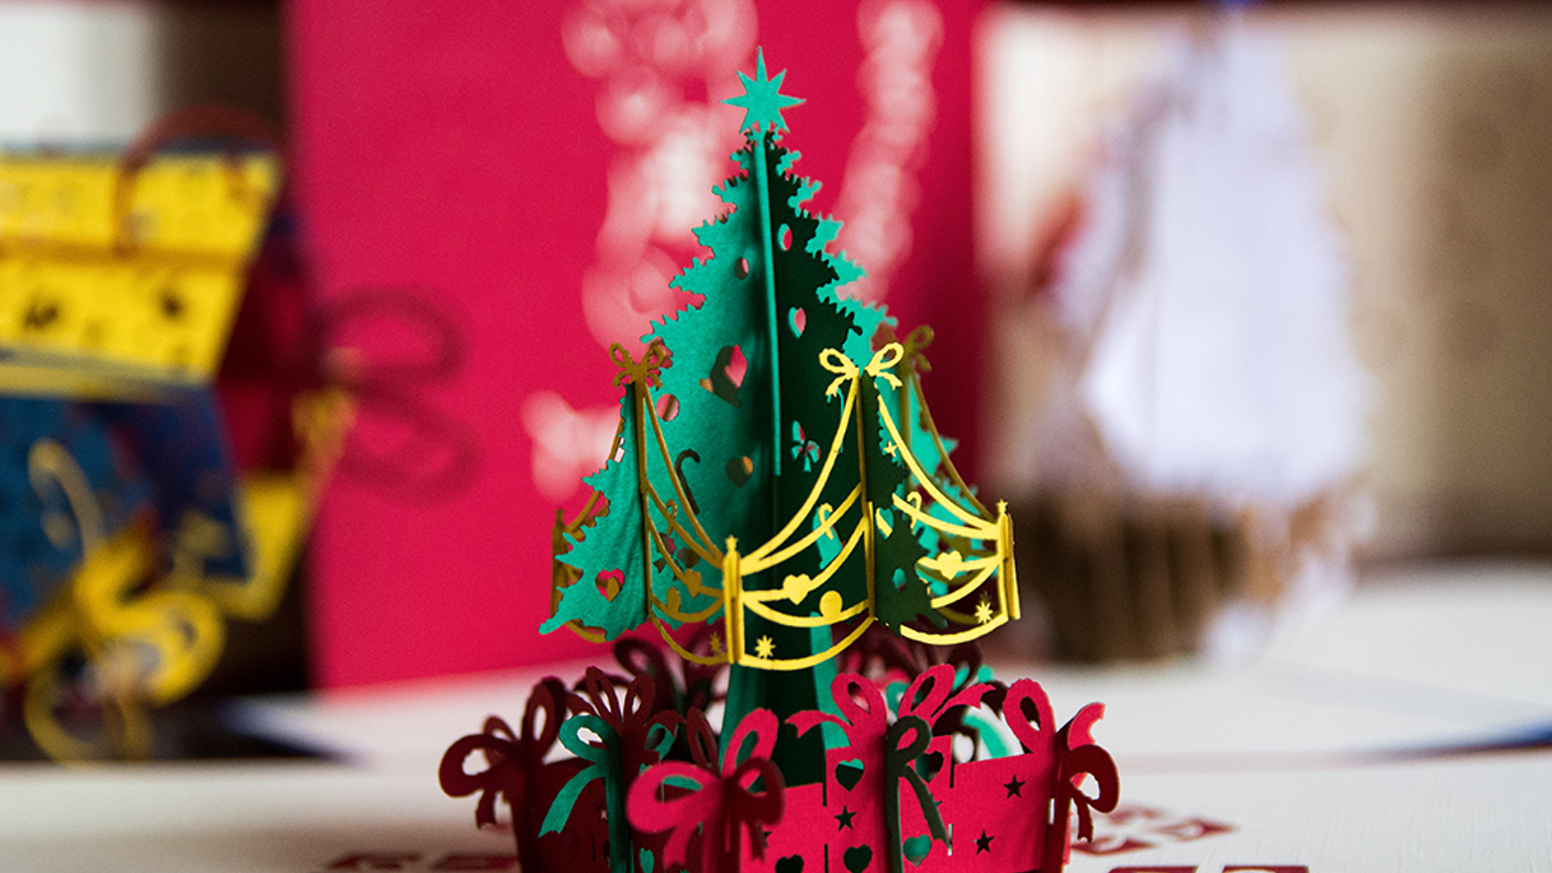 Wonderful 3d Popup Christmas Cards Small Yet Meaningful By